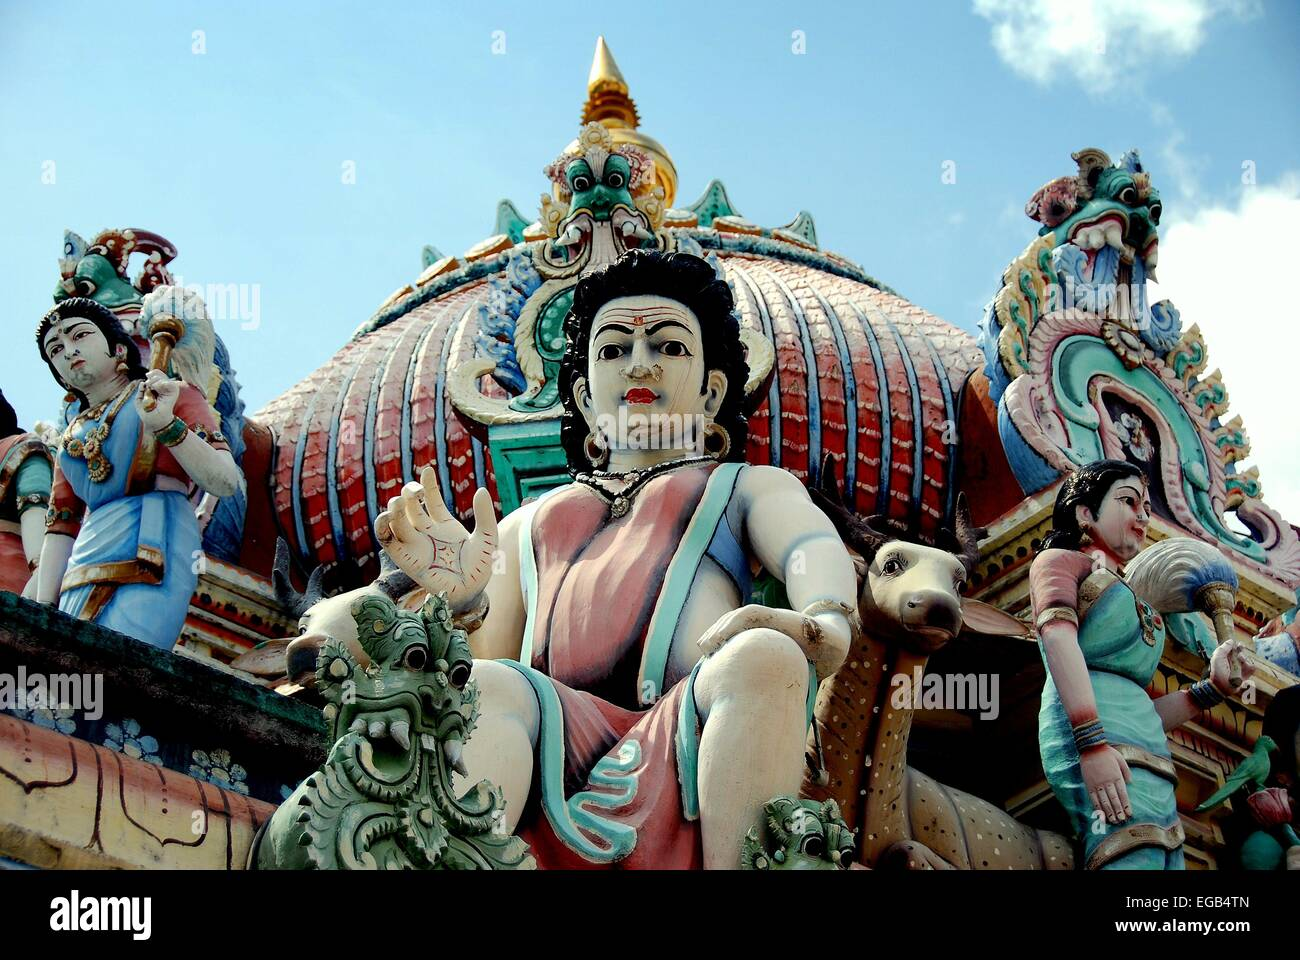 Singapore: Hand-carved colourful Hindu deities on the roof of the Sri Mariamman temple in Chinatown  * - Stock Image